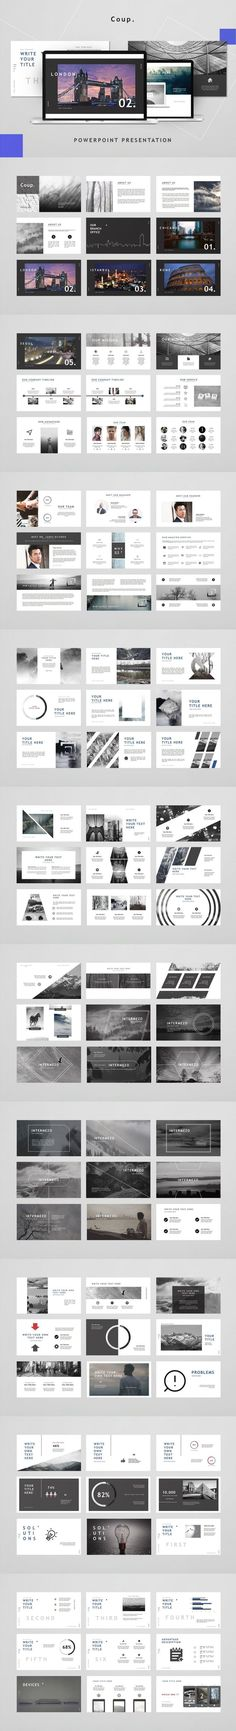 Coup - Powerpoint Template #timeline #multipurpose #simple #PresentationTemplates #planning #image #fashion #biz #corporate #PresentationTemplate #summer #marketing #BestPowerpointTemplates #businesspowerpoint #pptx #PresentationTemplate #company #ecommerce #deck Corporate Presentation, Powerpoint Presentation Templates, Presentation Design, Branding Template, Microsoft Powerpoint, All Icon, Clean Design, Typography, Layout